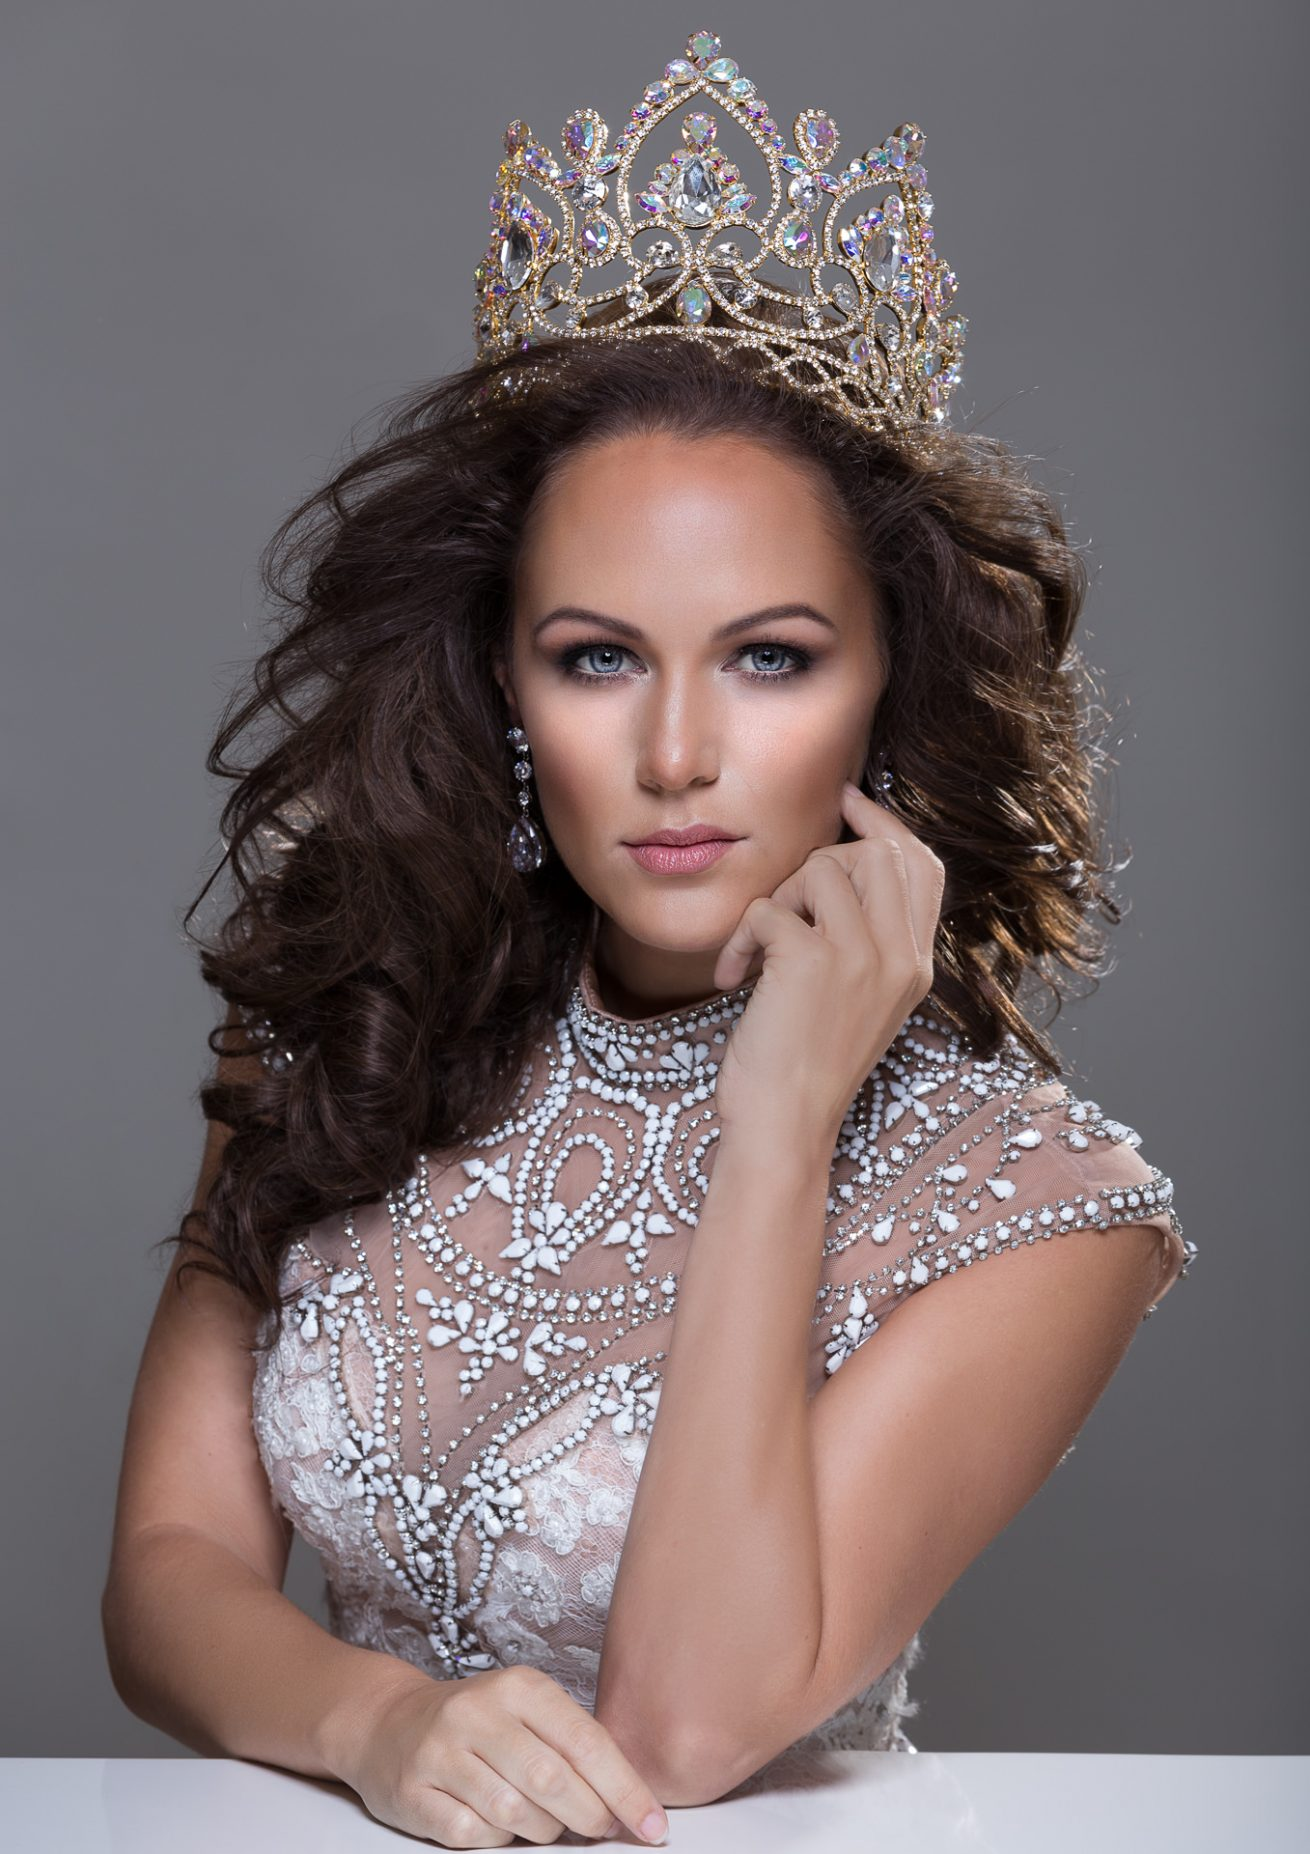 Mrs. Earth 2017 – Kristin Chucci